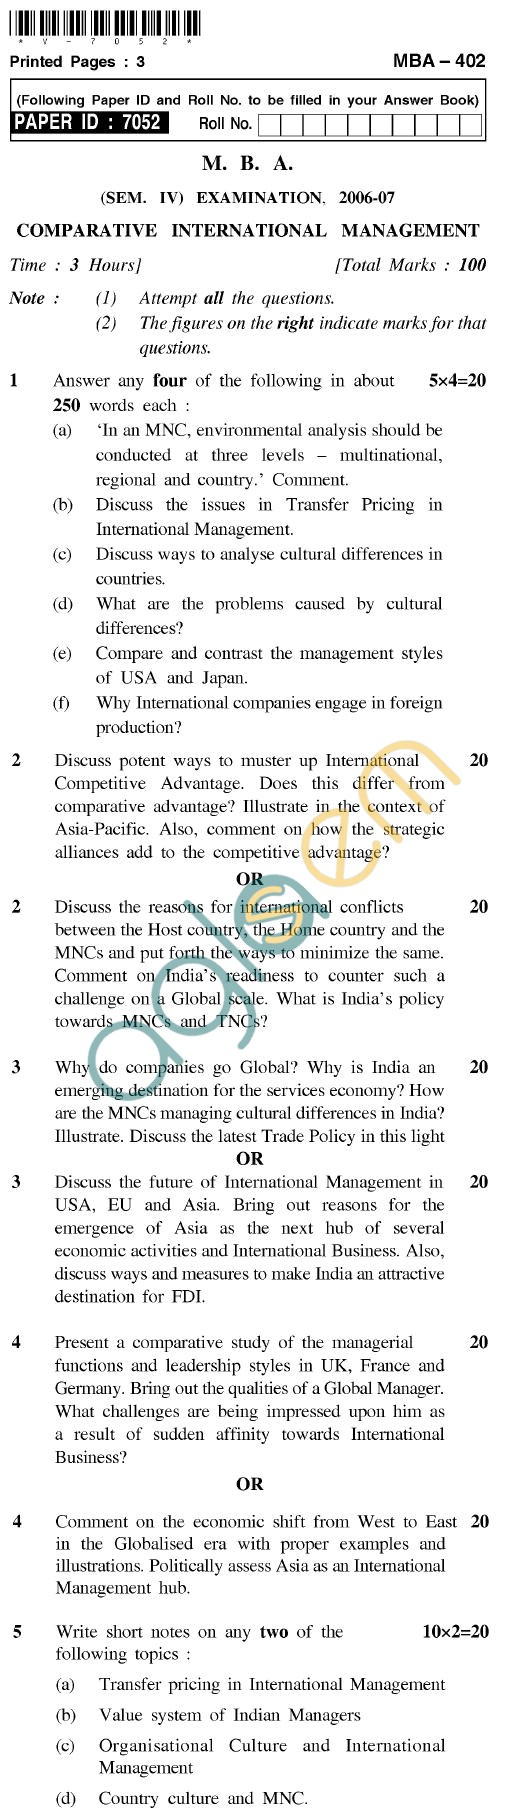 UPTU MBA Question Papers - MBA-402-Comparative International Management